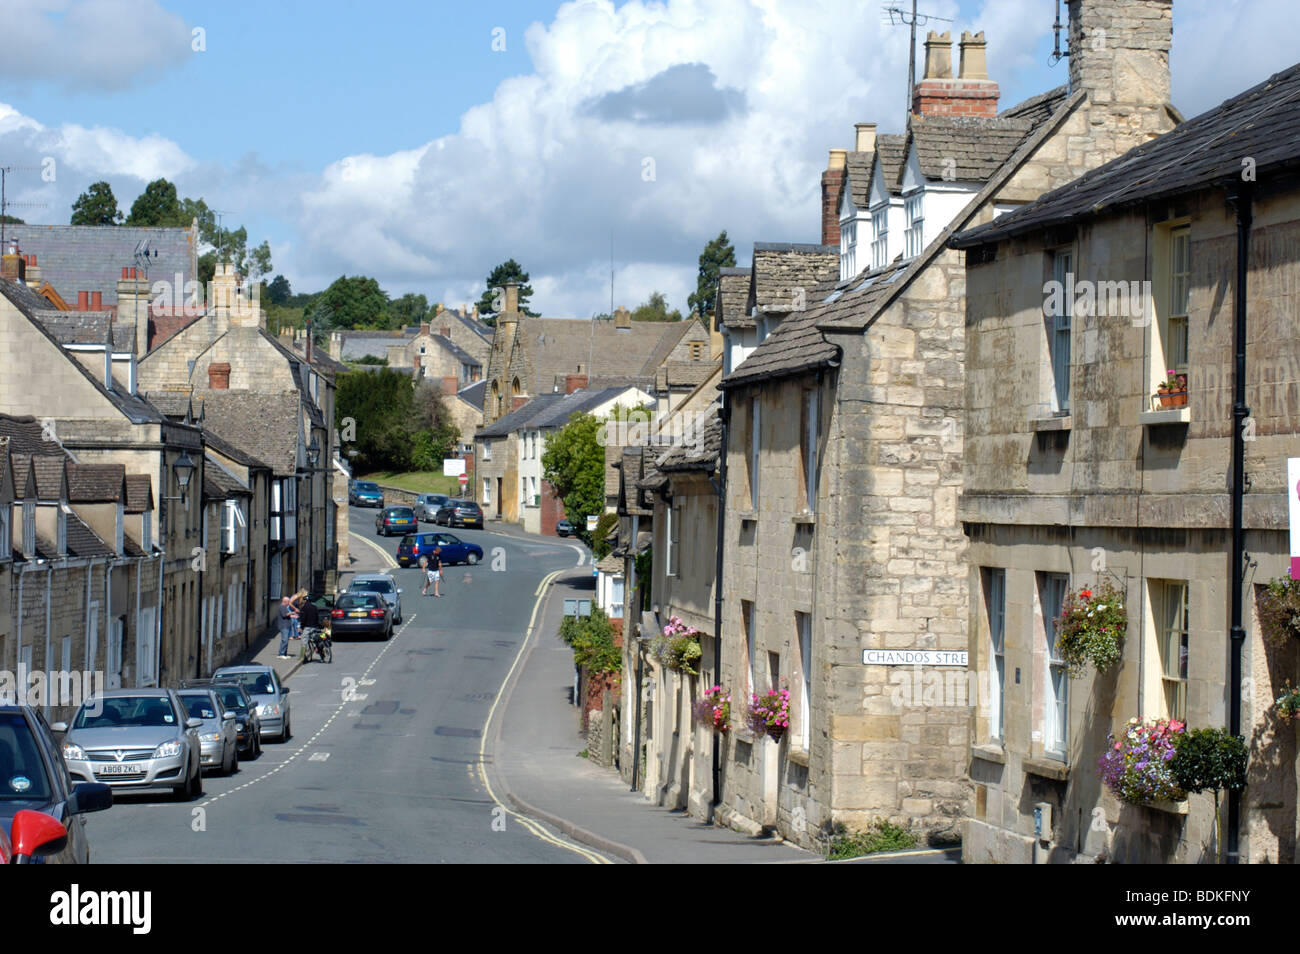 Market Town showing old and historic buildings - Stock Image